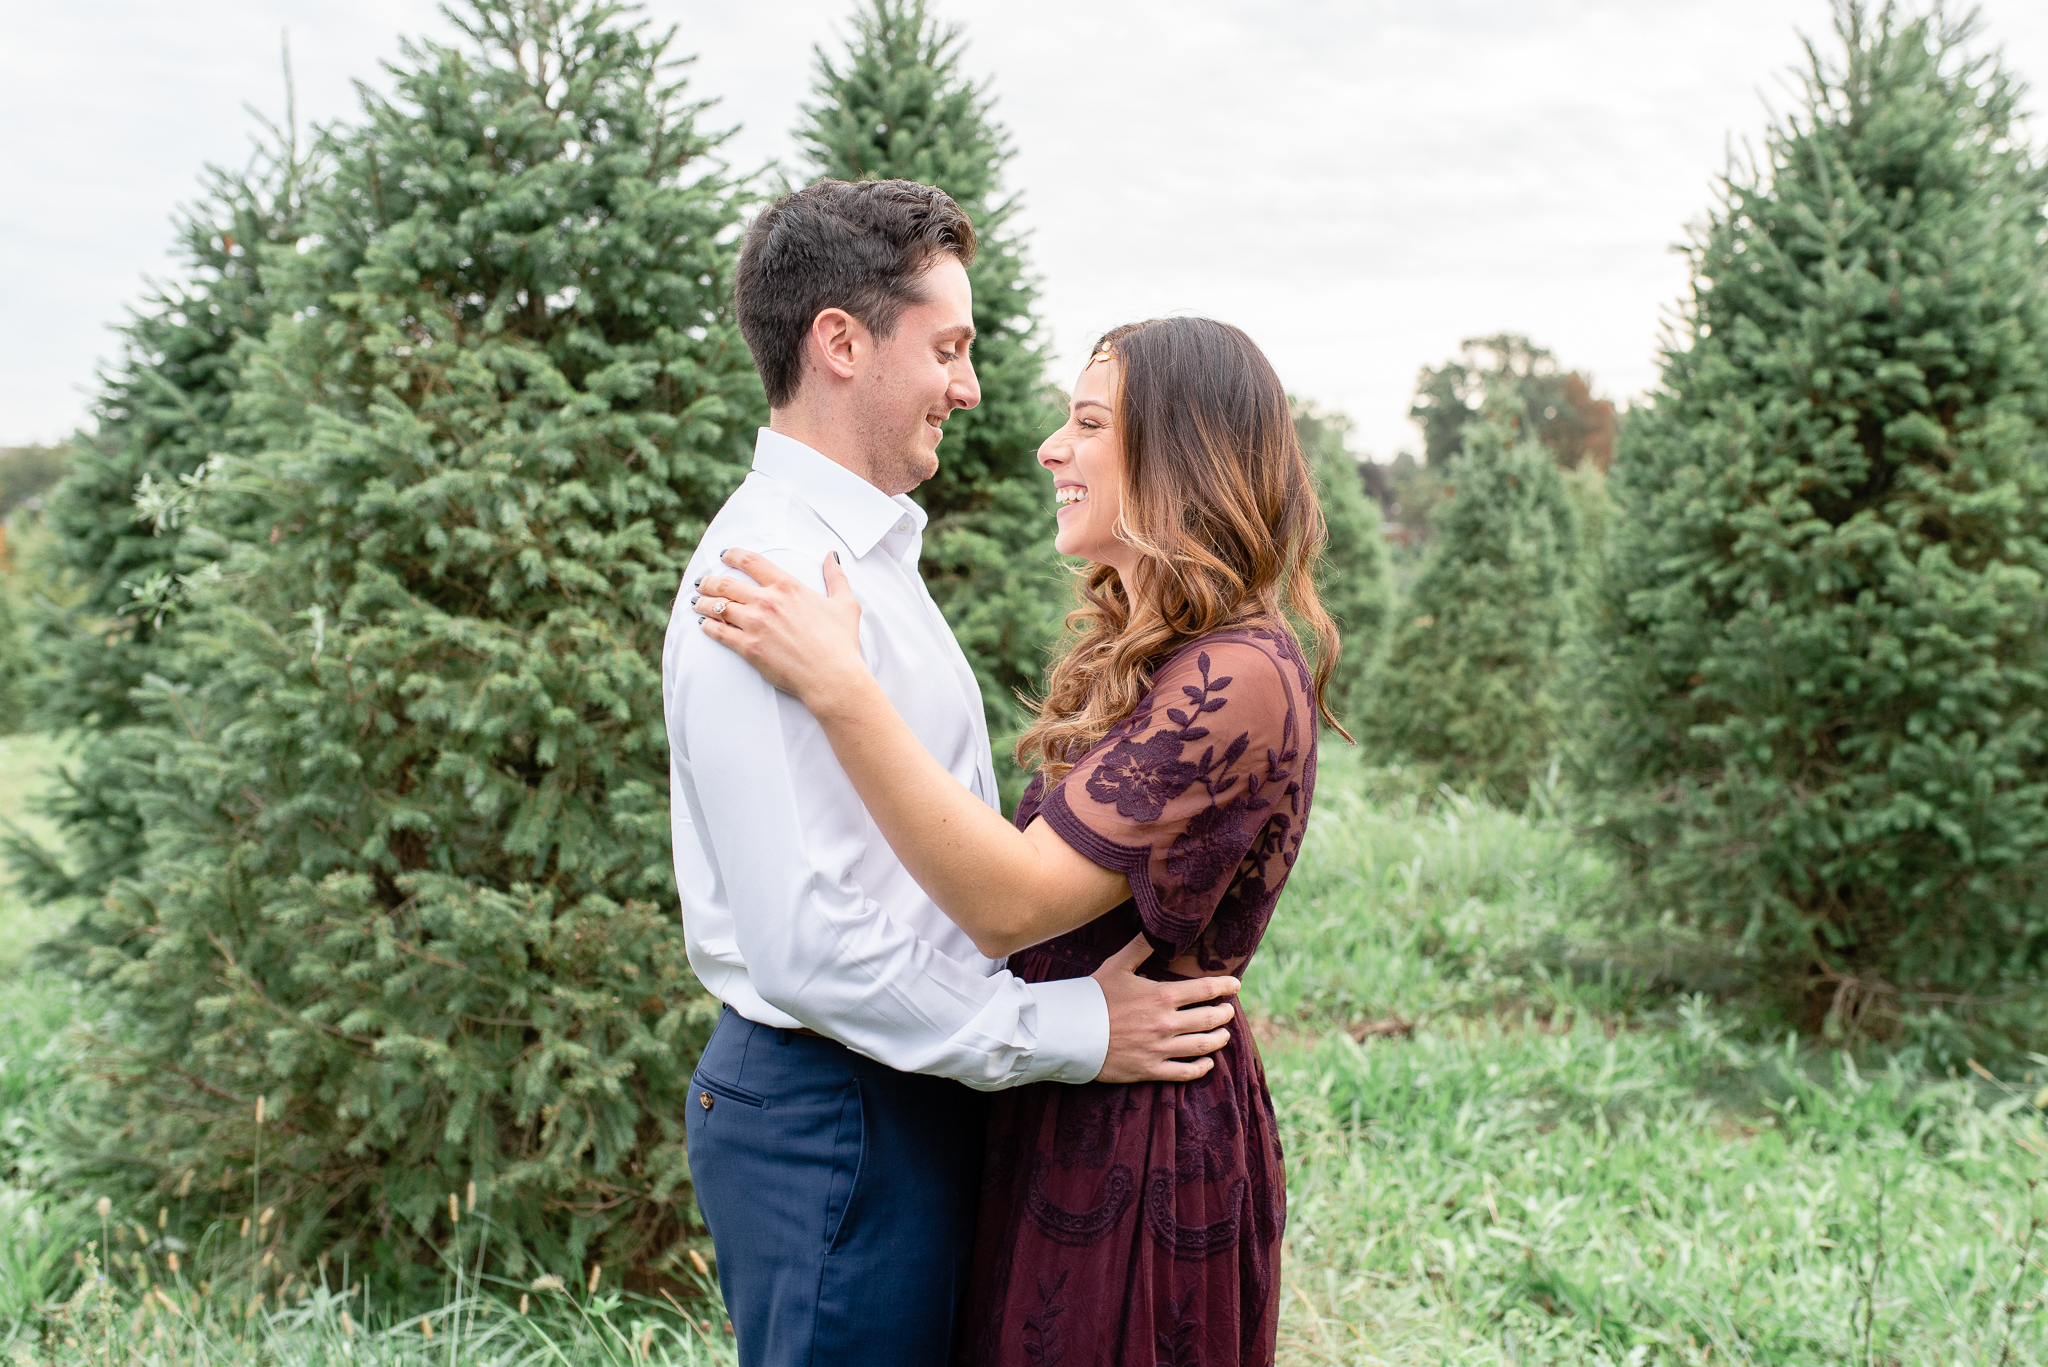 10_19_2018_Dana_Slifer_Photography_Brittany_and_Kevin_Engagement_Session_WEB_04.jpg